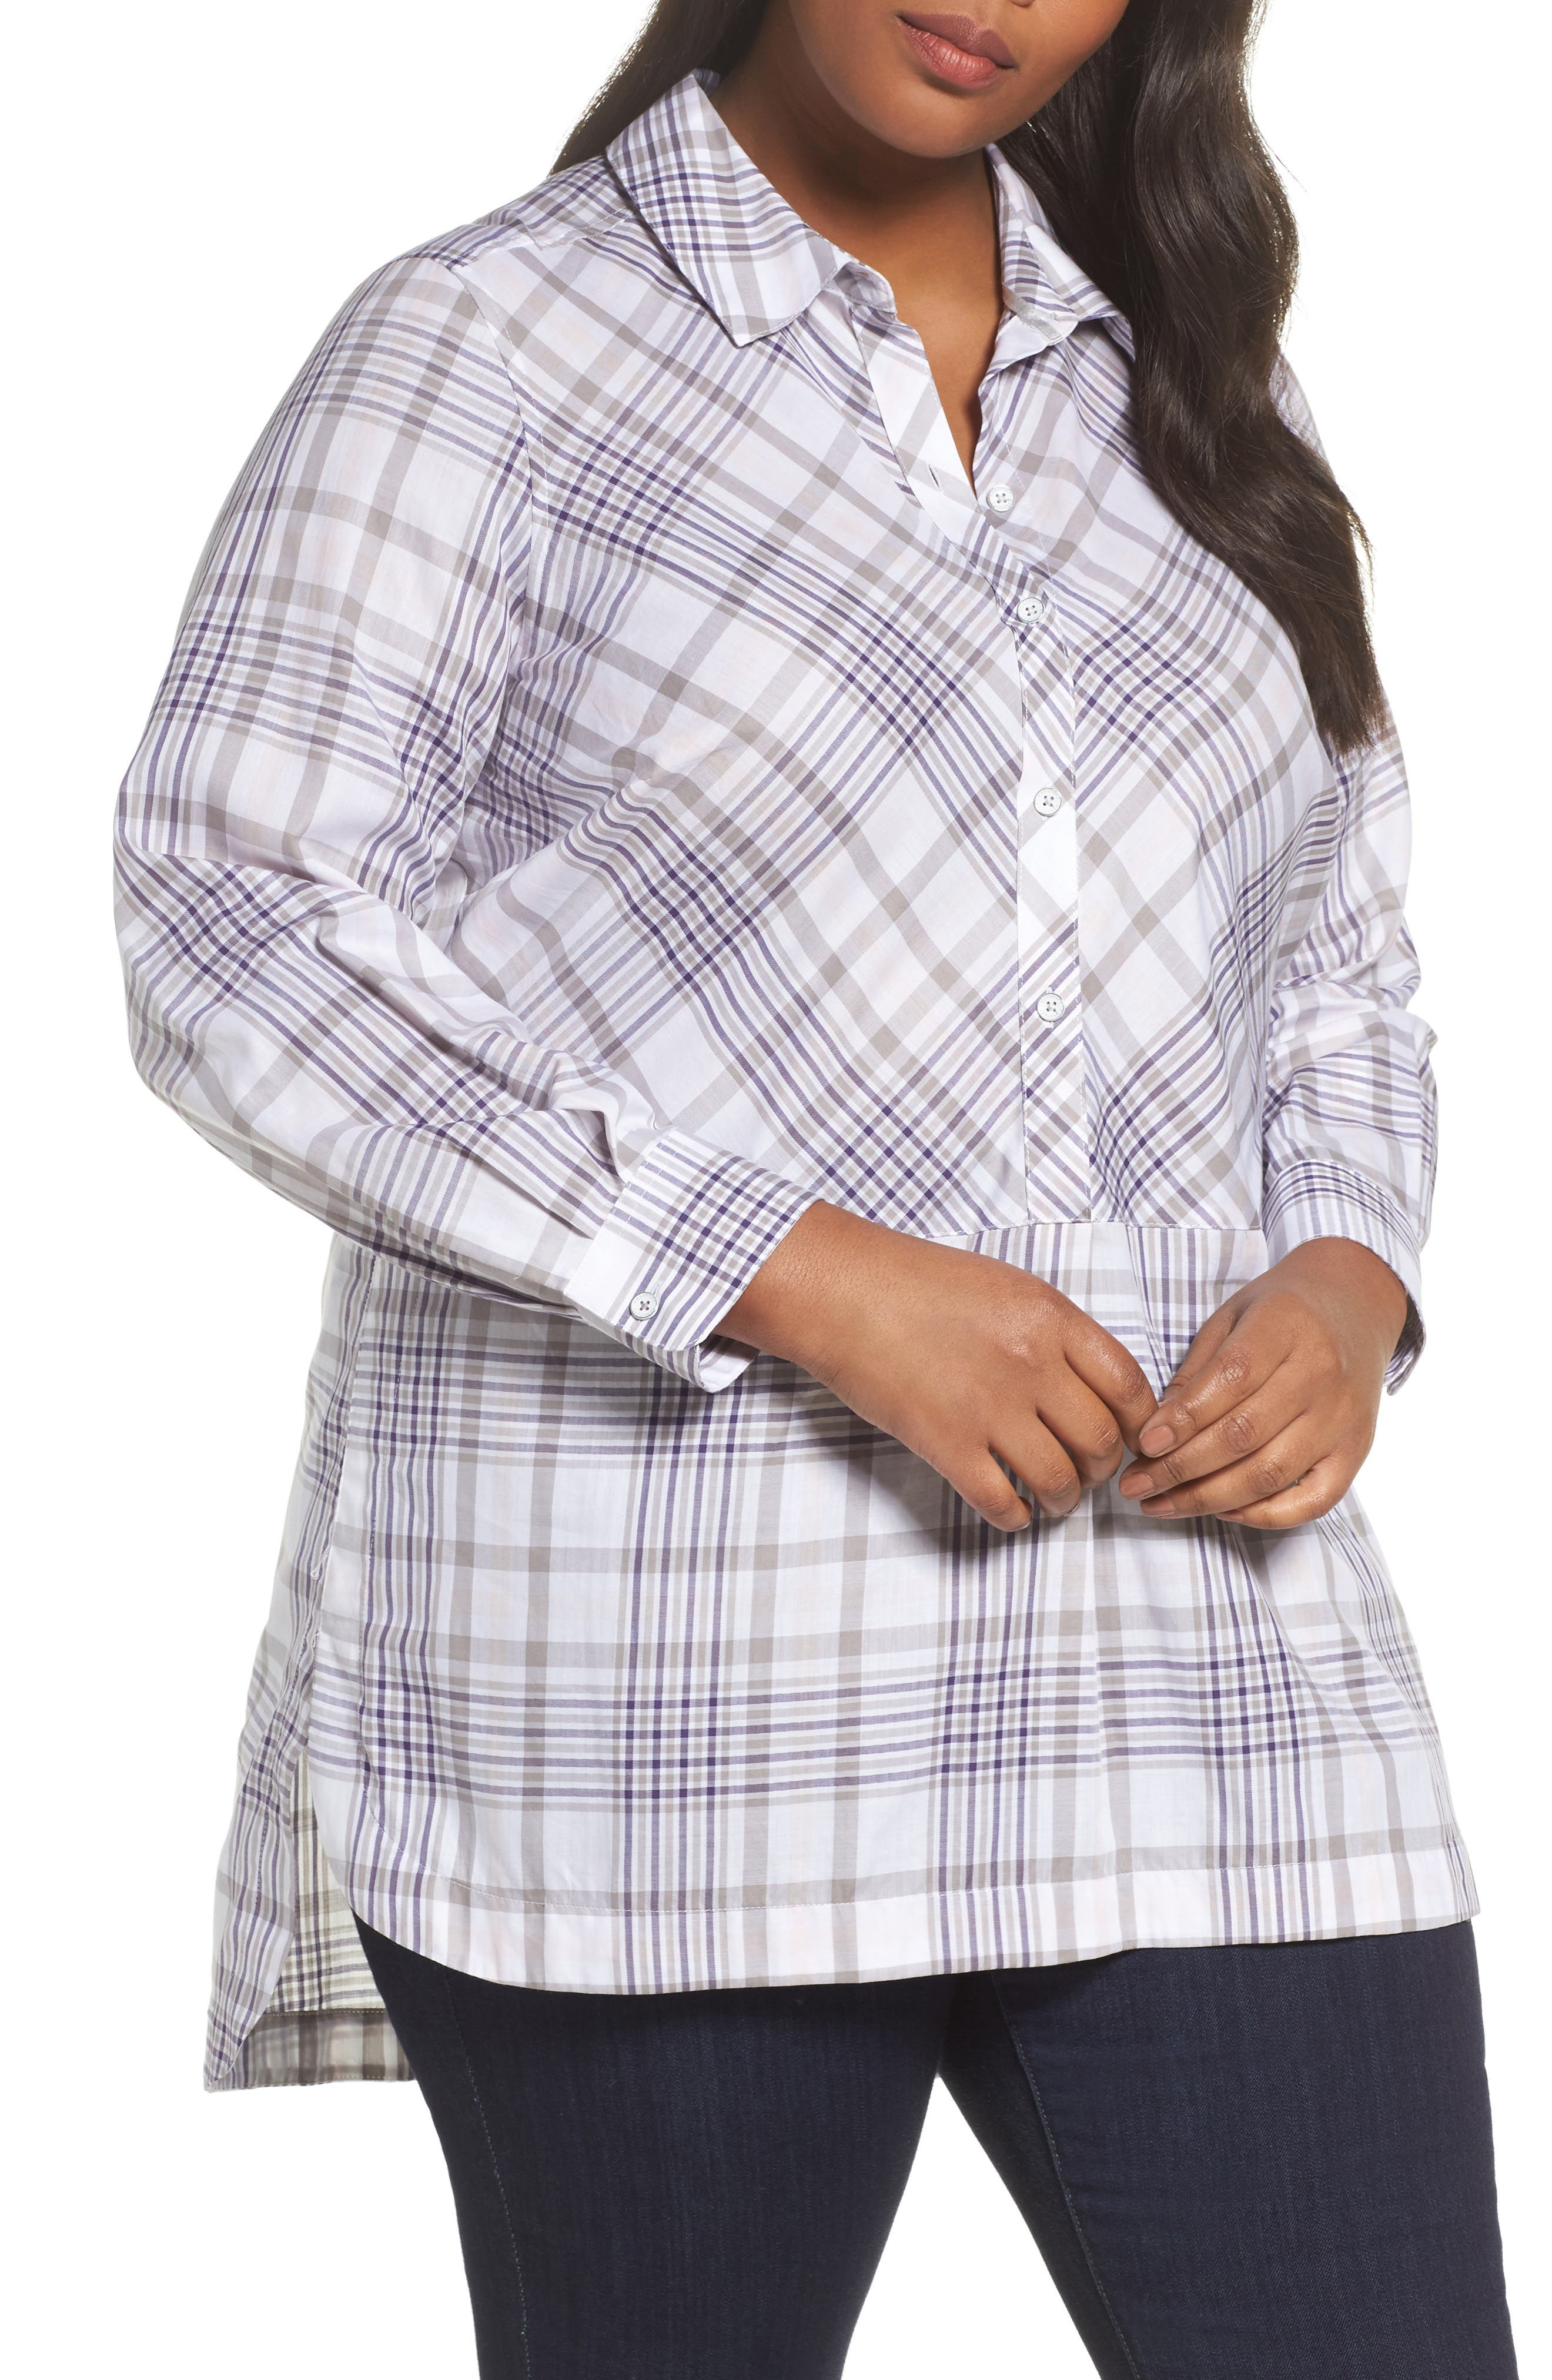 Maddy Winter Plaid Shirt,                         Main,                         color, Slate Multi